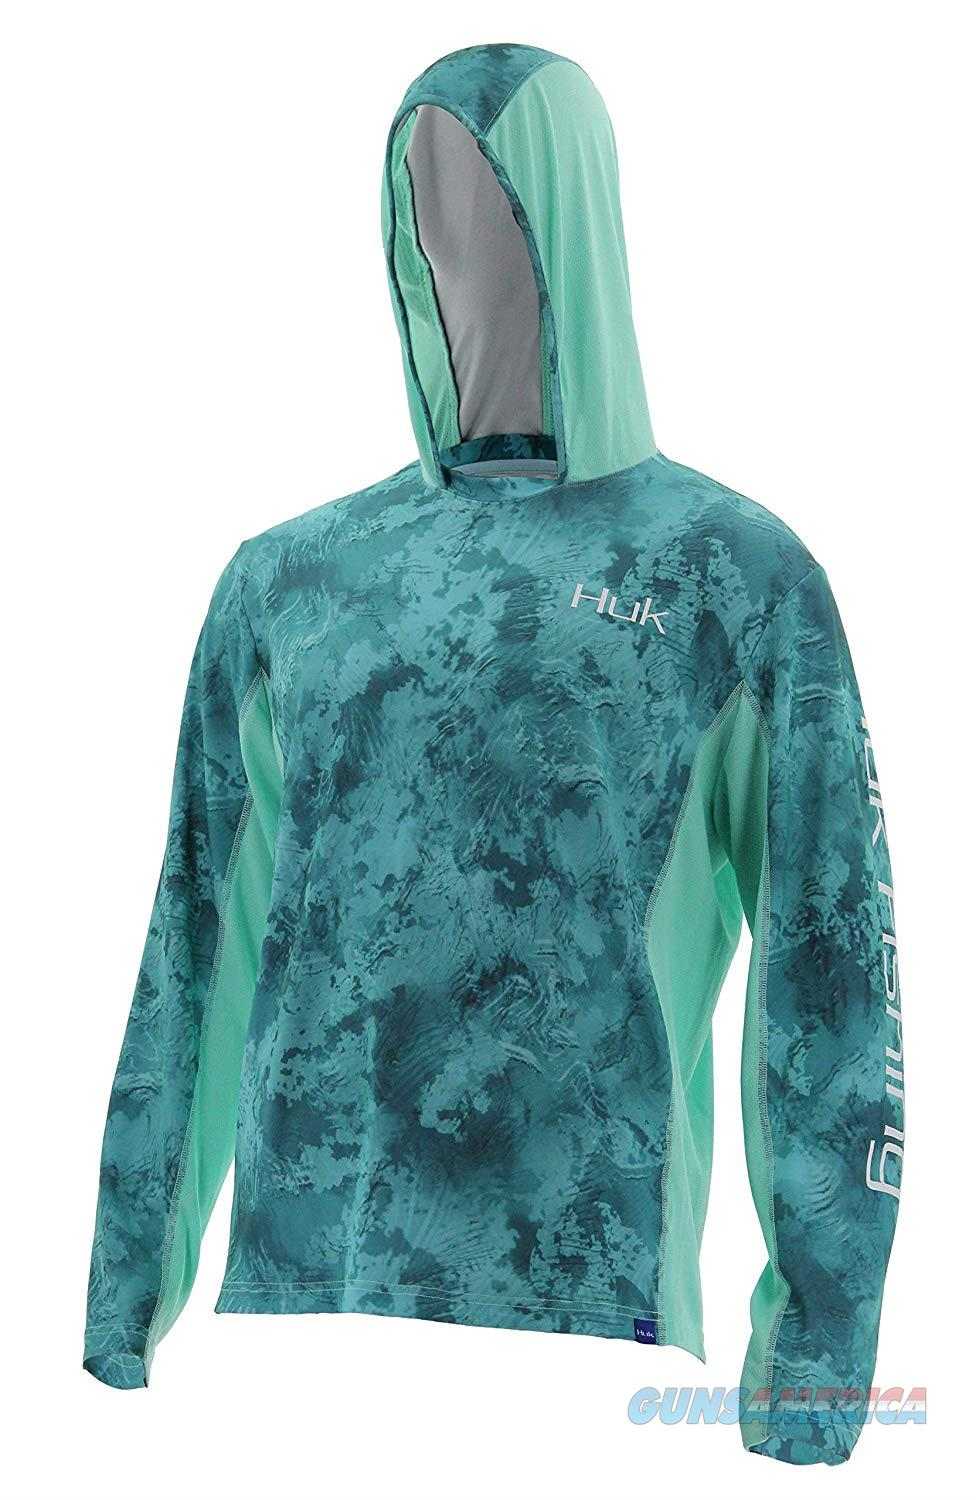 Huk Icon Camo Hoodie Outgoing Tide 3XL  Non-Guns > Hunting Clothing and Equipment > Clothing > Shirts